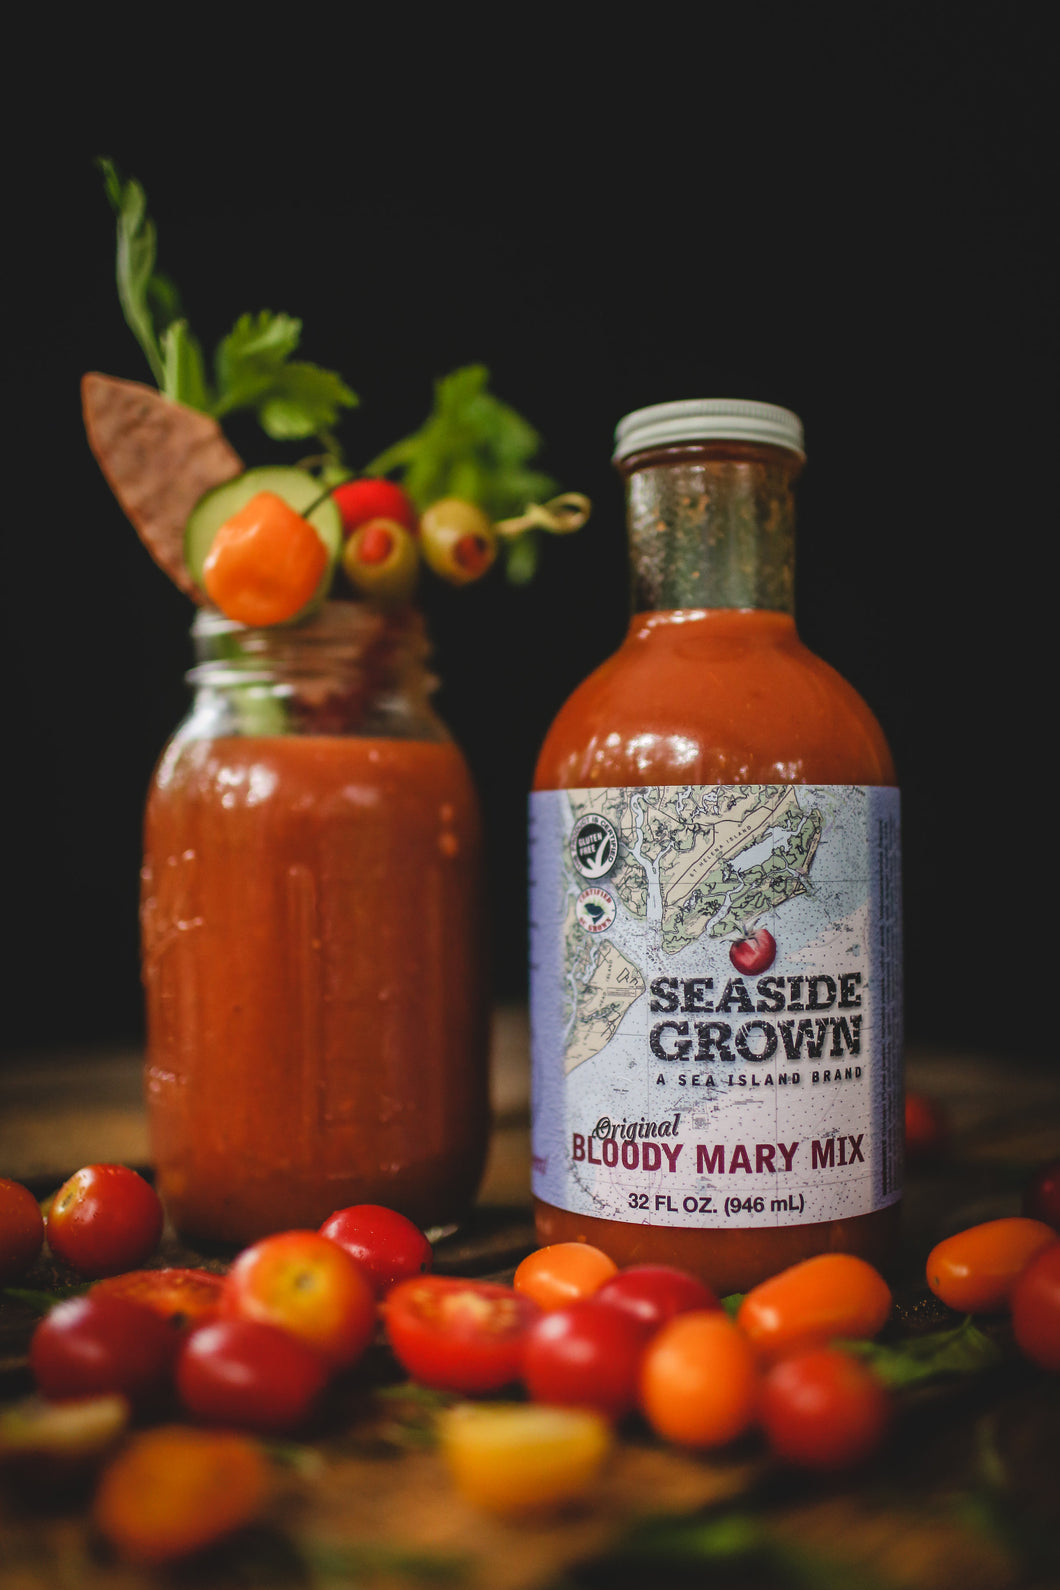 Seaside Grown Bloody Mary Mix 32oz